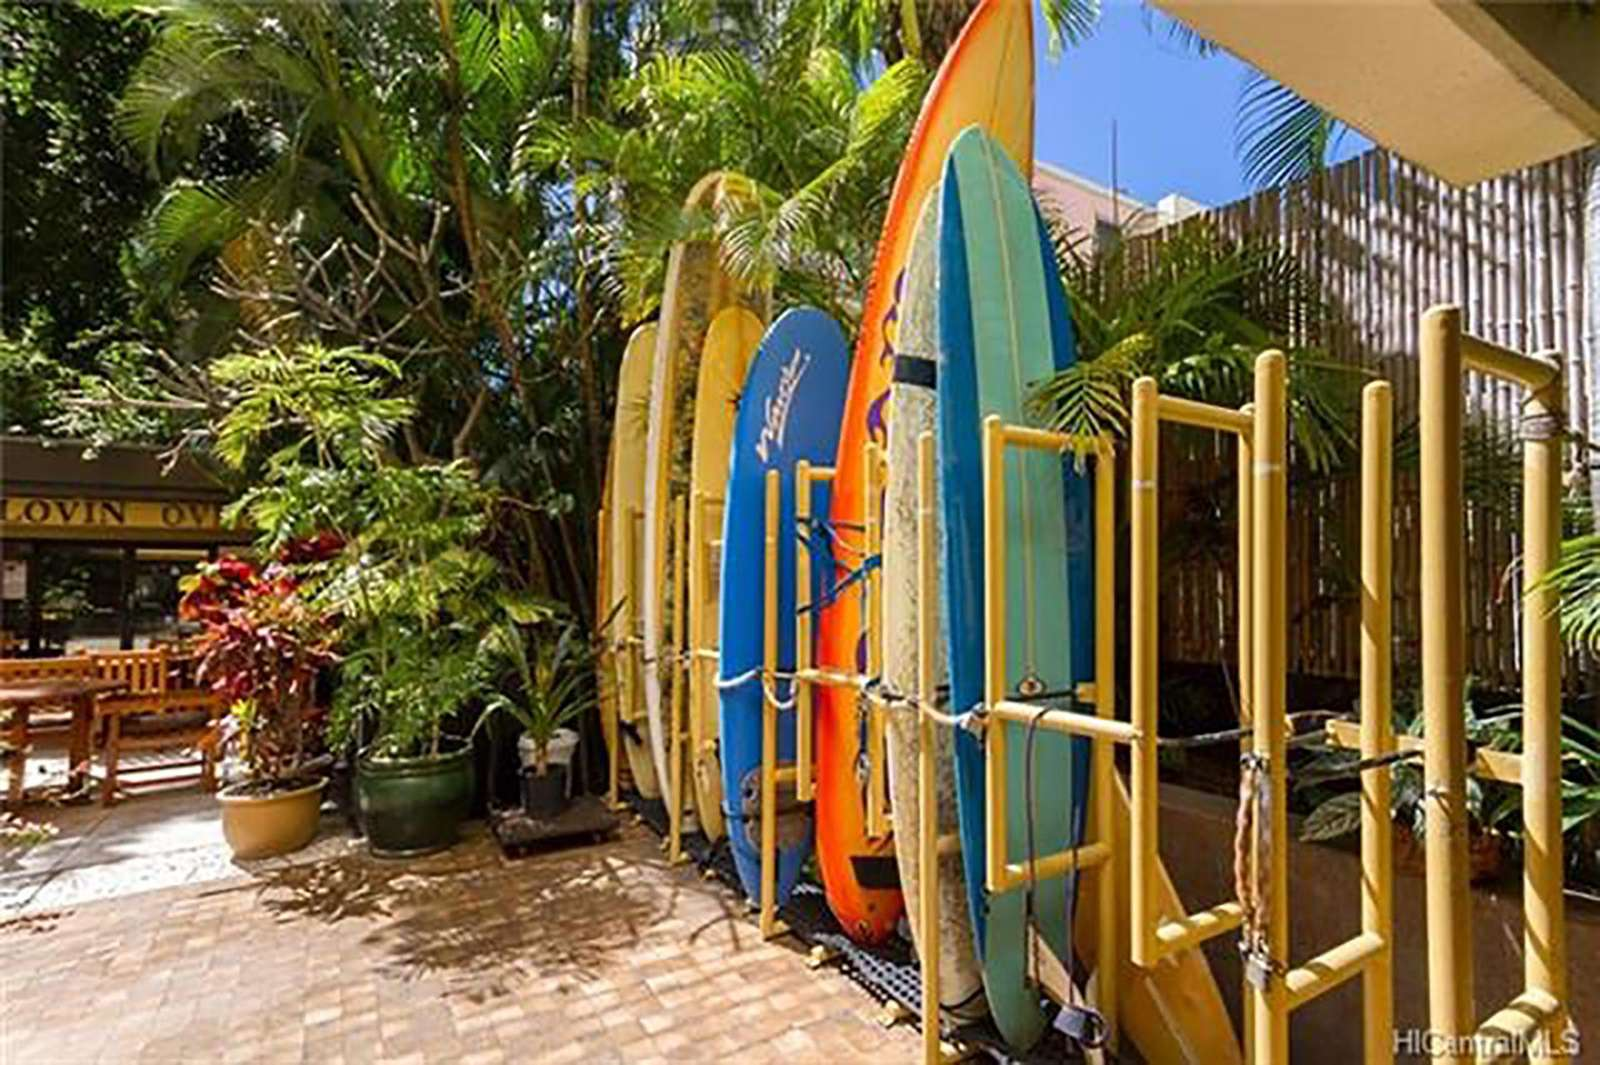 residents Surfboard area